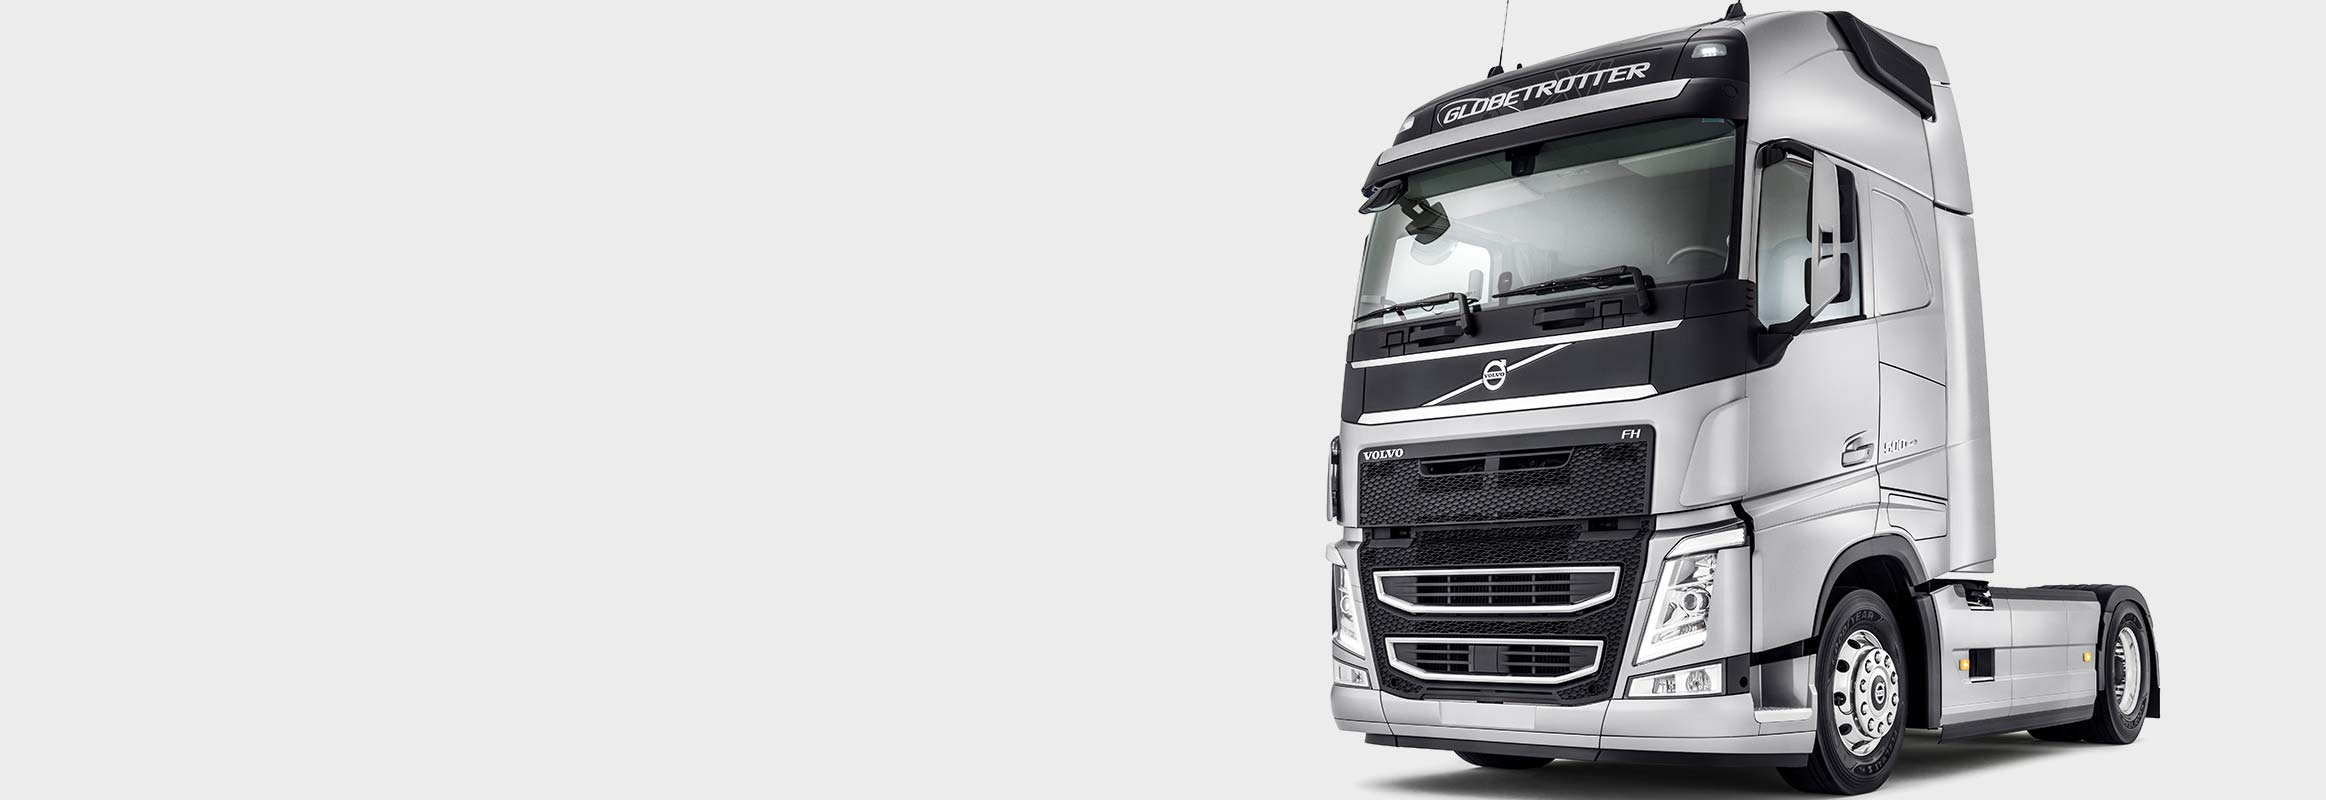 Volvo FH Setting the standard | Volvo Trucks